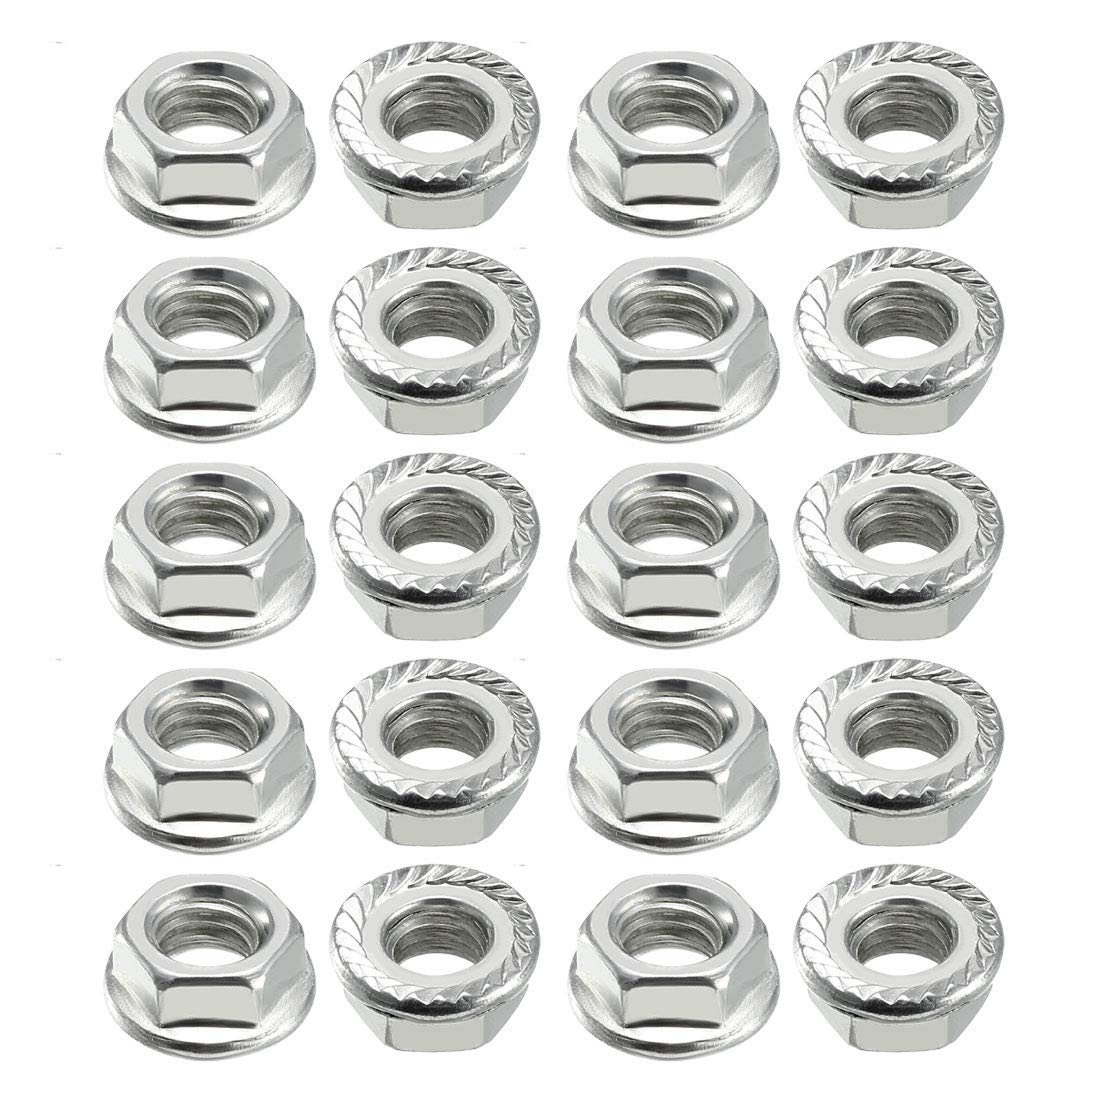 uxcell M8 Serrated Flange Hex Lock Nuts, Carbon Steel 100 Pcs